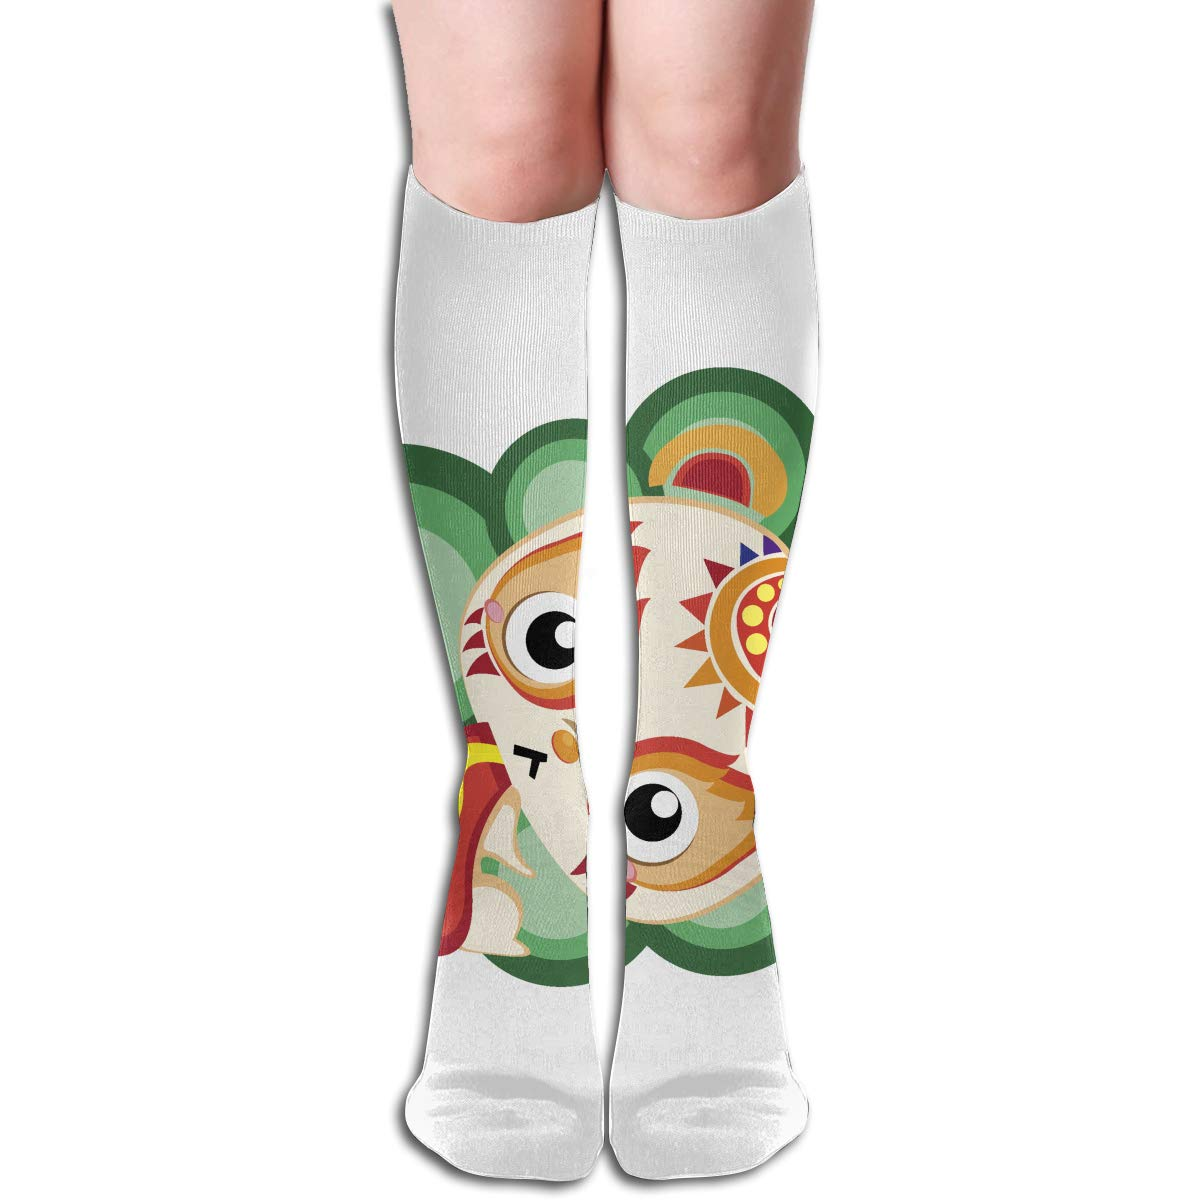 Women Socks Over Knee Illustration Of Cartoon Cat Arranging Presents Winter Vintage For Party